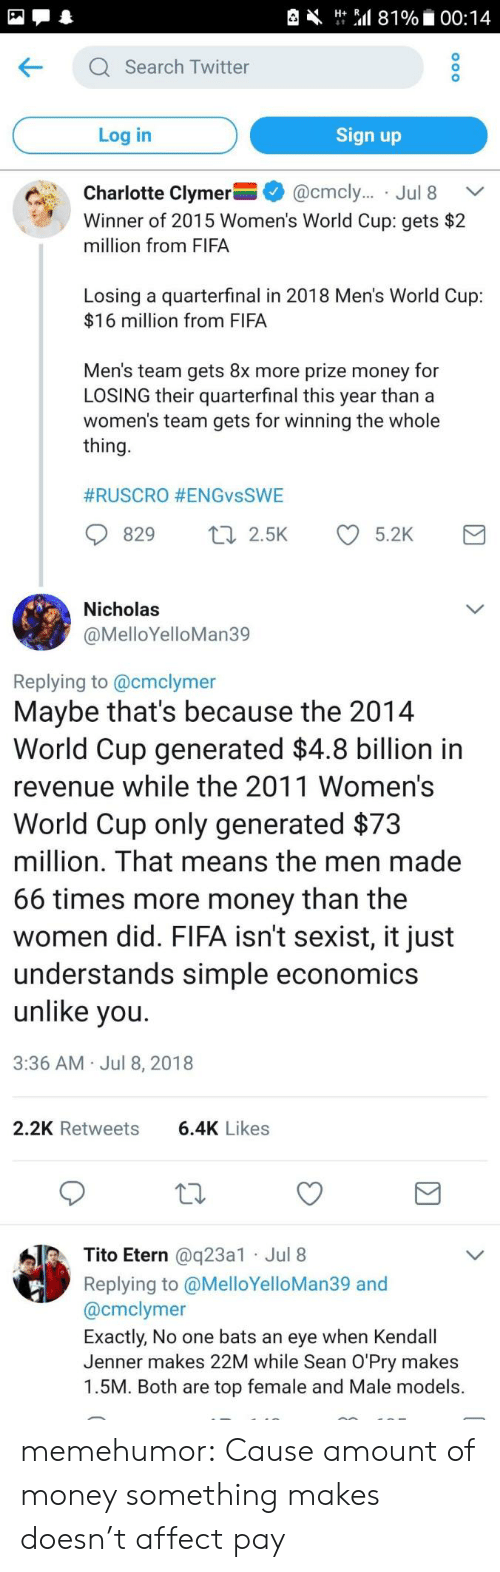 no one bats an eye: Ht Sal 81%. 00:14  KQ Search Twitter  Log in  Sign up  Charlotte Clymer-+ @cmcly.. . Jul 8  Winner of 2015 Women's World Cup: gets $2  million from FIFA  Ca.  ﹀  Losing a quarterfinal in 2018 Men's World Cup:  $16 million from FIFA  Men's team gets 8x more prize money for  LOSING their quarterfinal this year than a  women's team gets for winning the whole  thing  #RUSCRO #ENGvsSWE  829 t 2.5K 5.2K  Nicholas  @MelloYelloMan39  Replying to @cmclymer  Maybe that's because the 2014  World Cup generated $4.8 billion in  revenue while the 2011 Women's  World Cup only generated $73  million. That means the men made  66 times more money than the  women did. FIFA isn't sexist, it just  understands simple economics  unlike vou  3:36 AM Jul 8, 2018  2.2K Retweets  6.4K Likes  Tito Etern @q23a1 Jul 8  Replying to @MelloYelloMan39 and  @cmclymer  Exactly, No one bats an eye when Kendall  Jenner makes 22M while Sean O'Pry makes  1.5M. Both are top female and Male models. memehumor:  Cause amount of money something makes doesn't affect pay